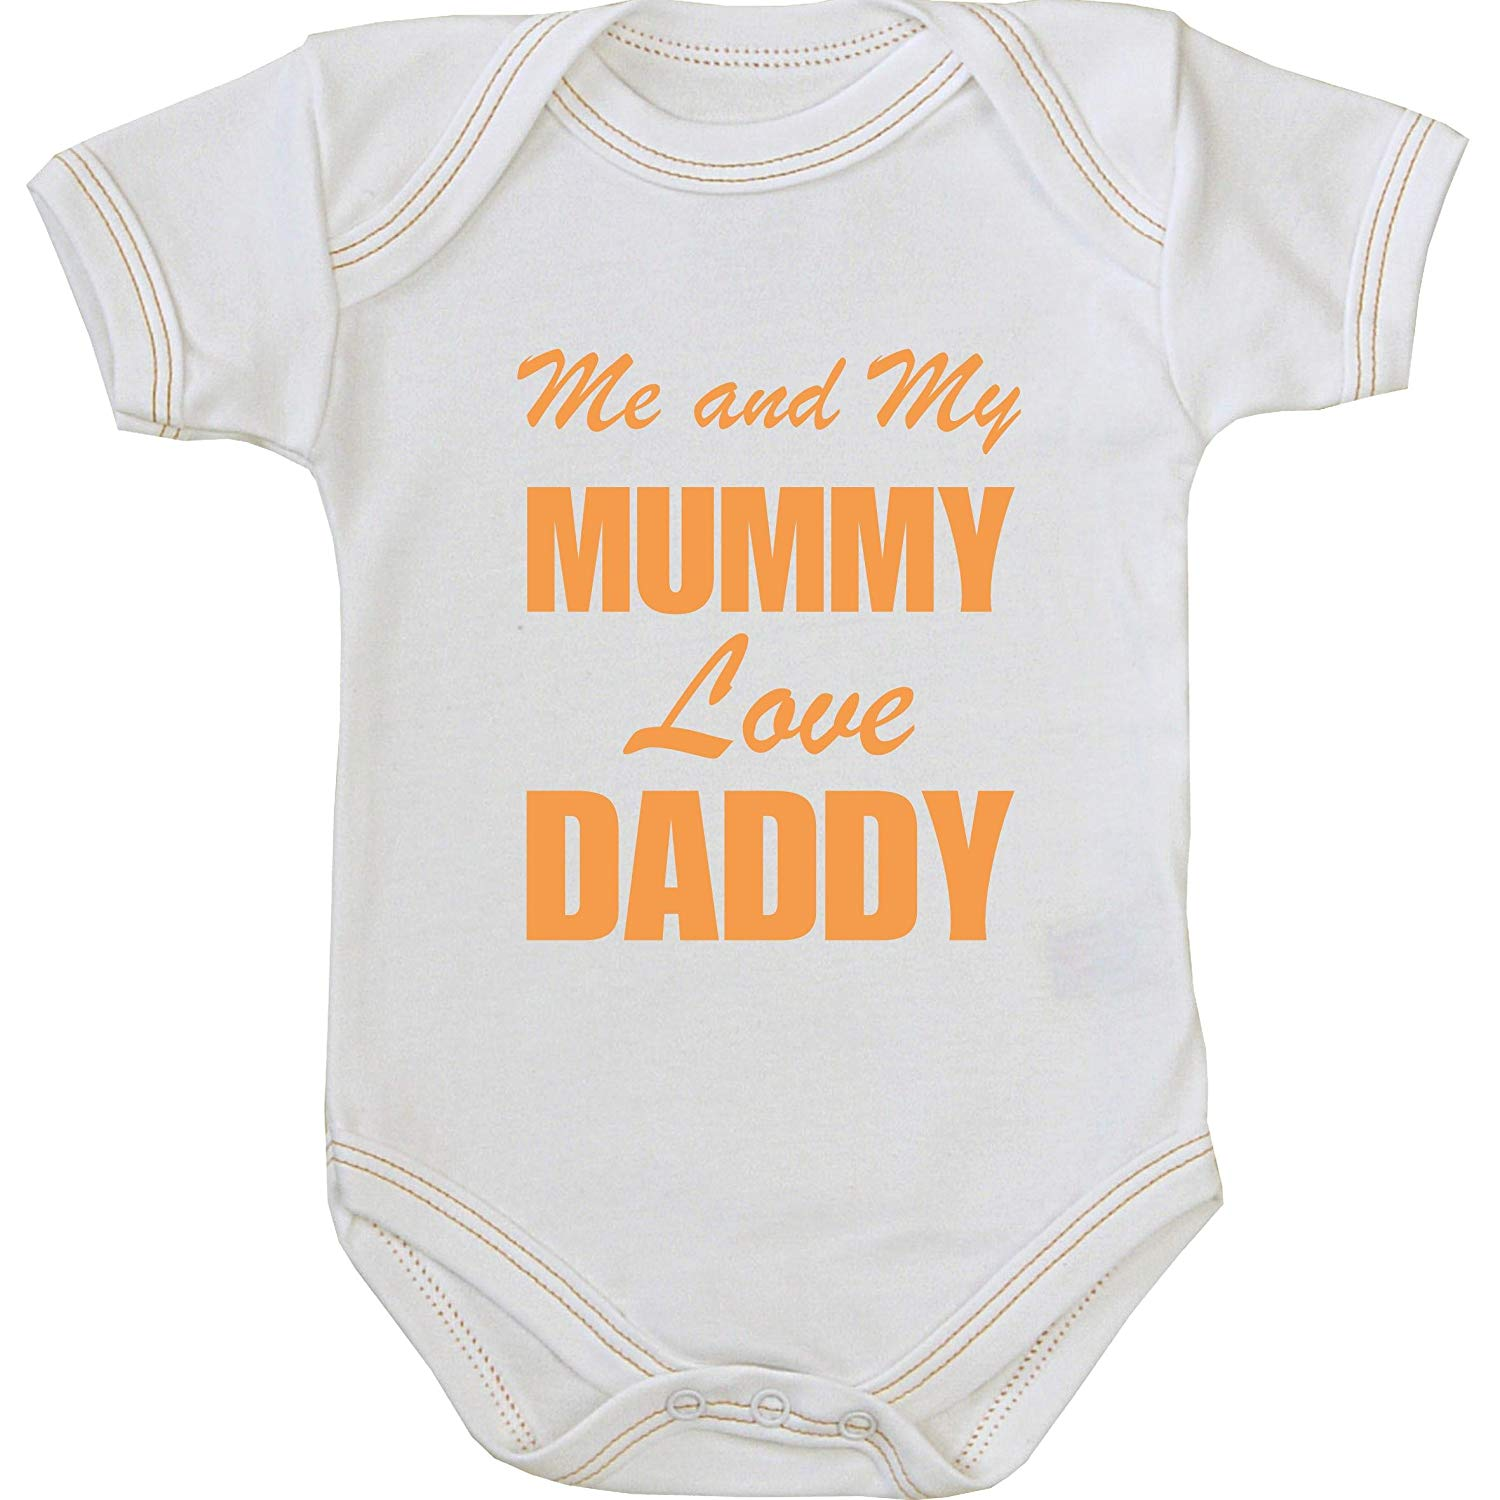 794d04013 Buy BabyPrem Baby Me and my Mum Love Daddy Long Sleeved Bodysuit ...